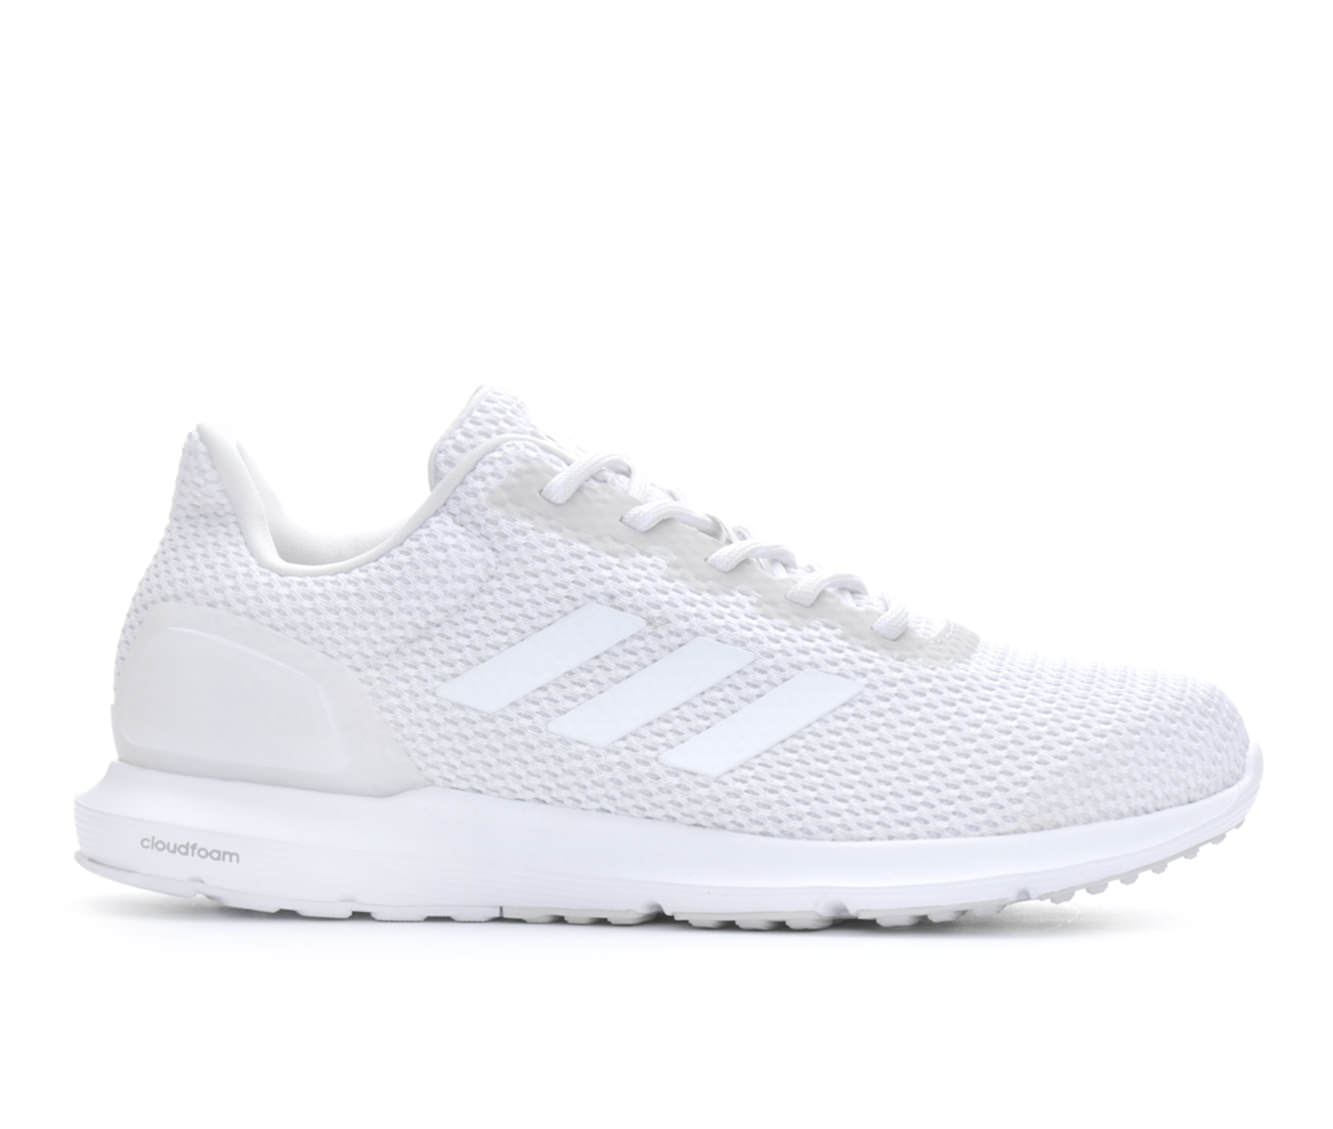 Women's Adidas Cosmic 2 SL Running Shoes (White - Size 8) 1664783